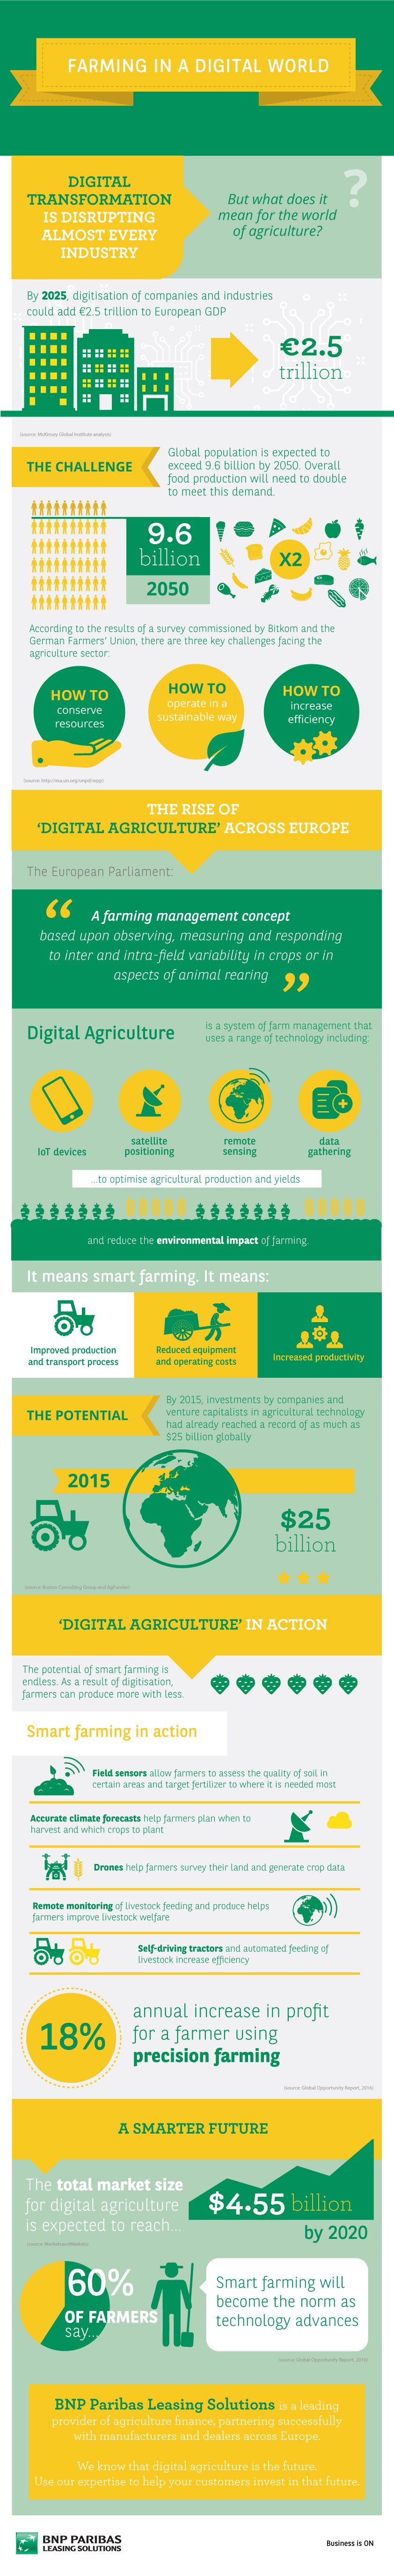 Infographics-Farming in a digital world